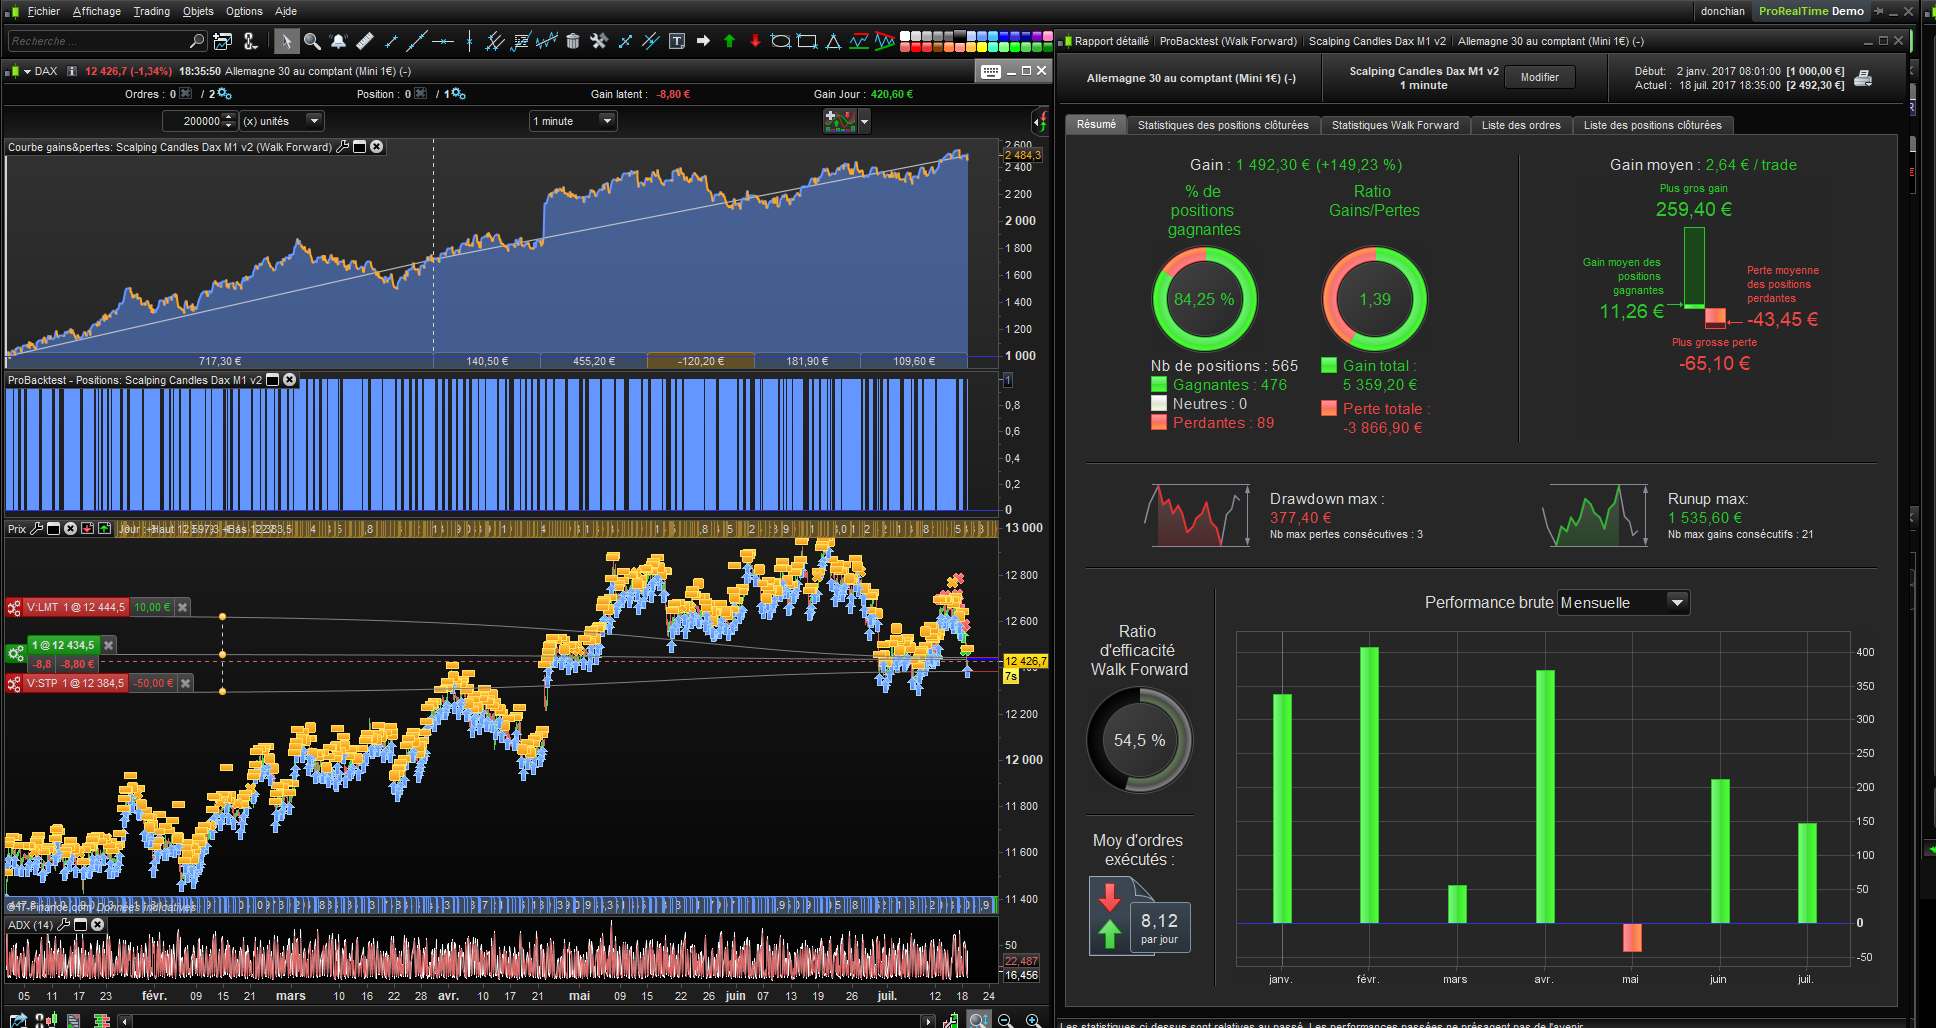 1 min GBP/USD Scalping with EMA and MACD